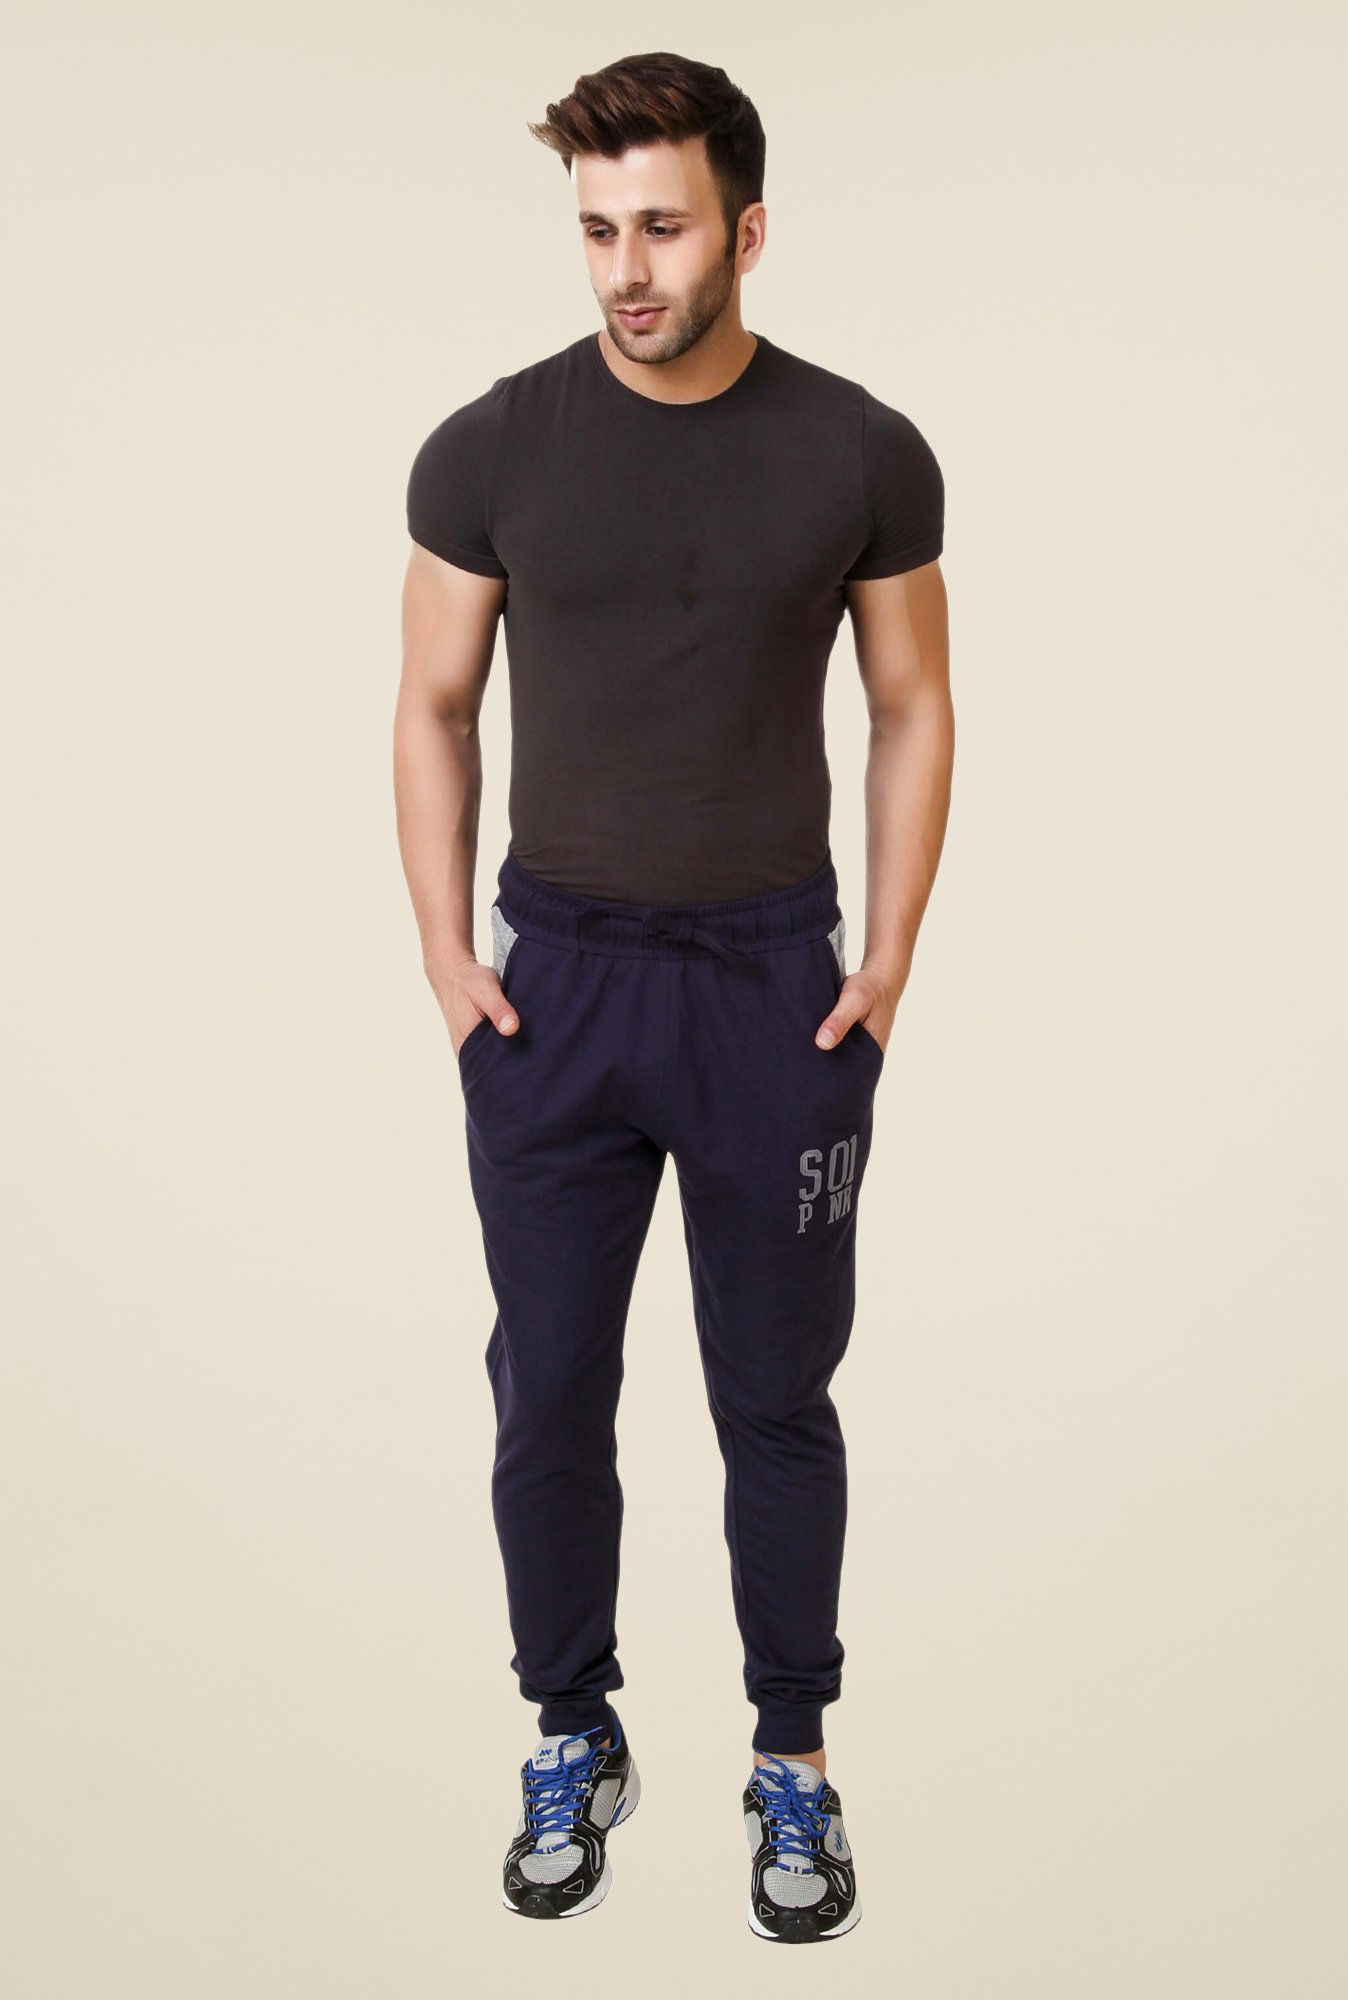 Spunk Navy Duffy Joggers